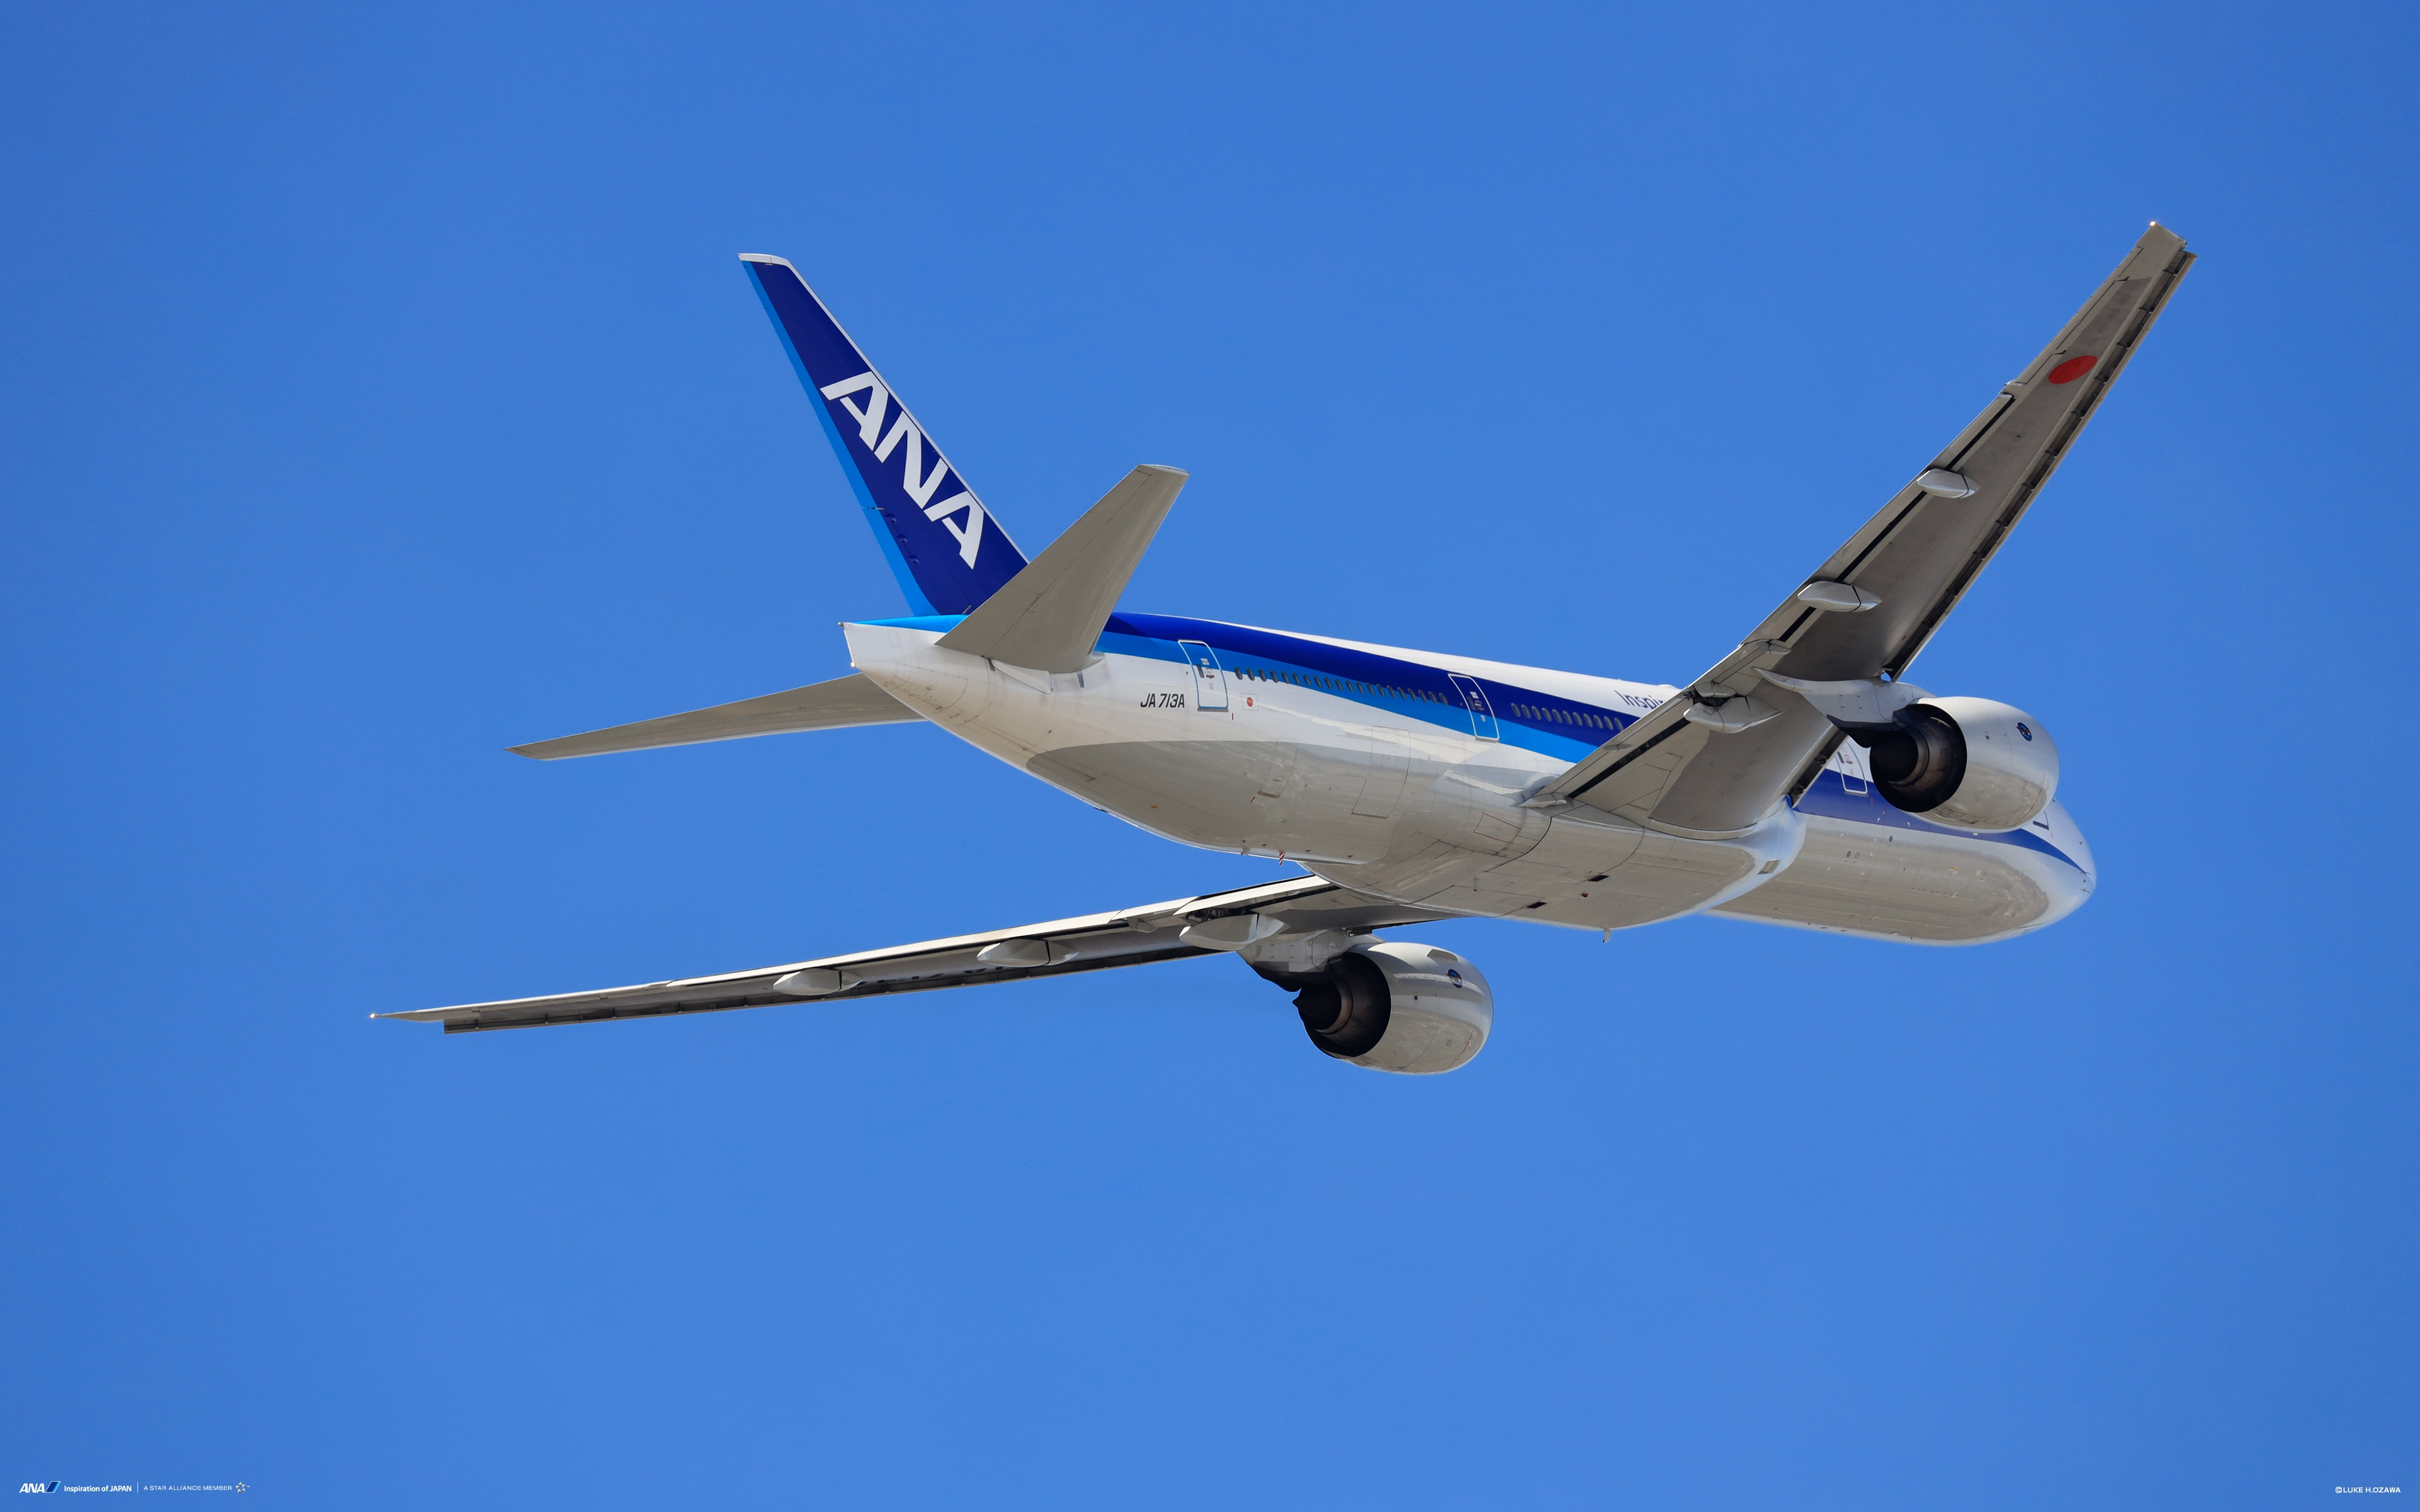 Boeing 777 ANA aircraft